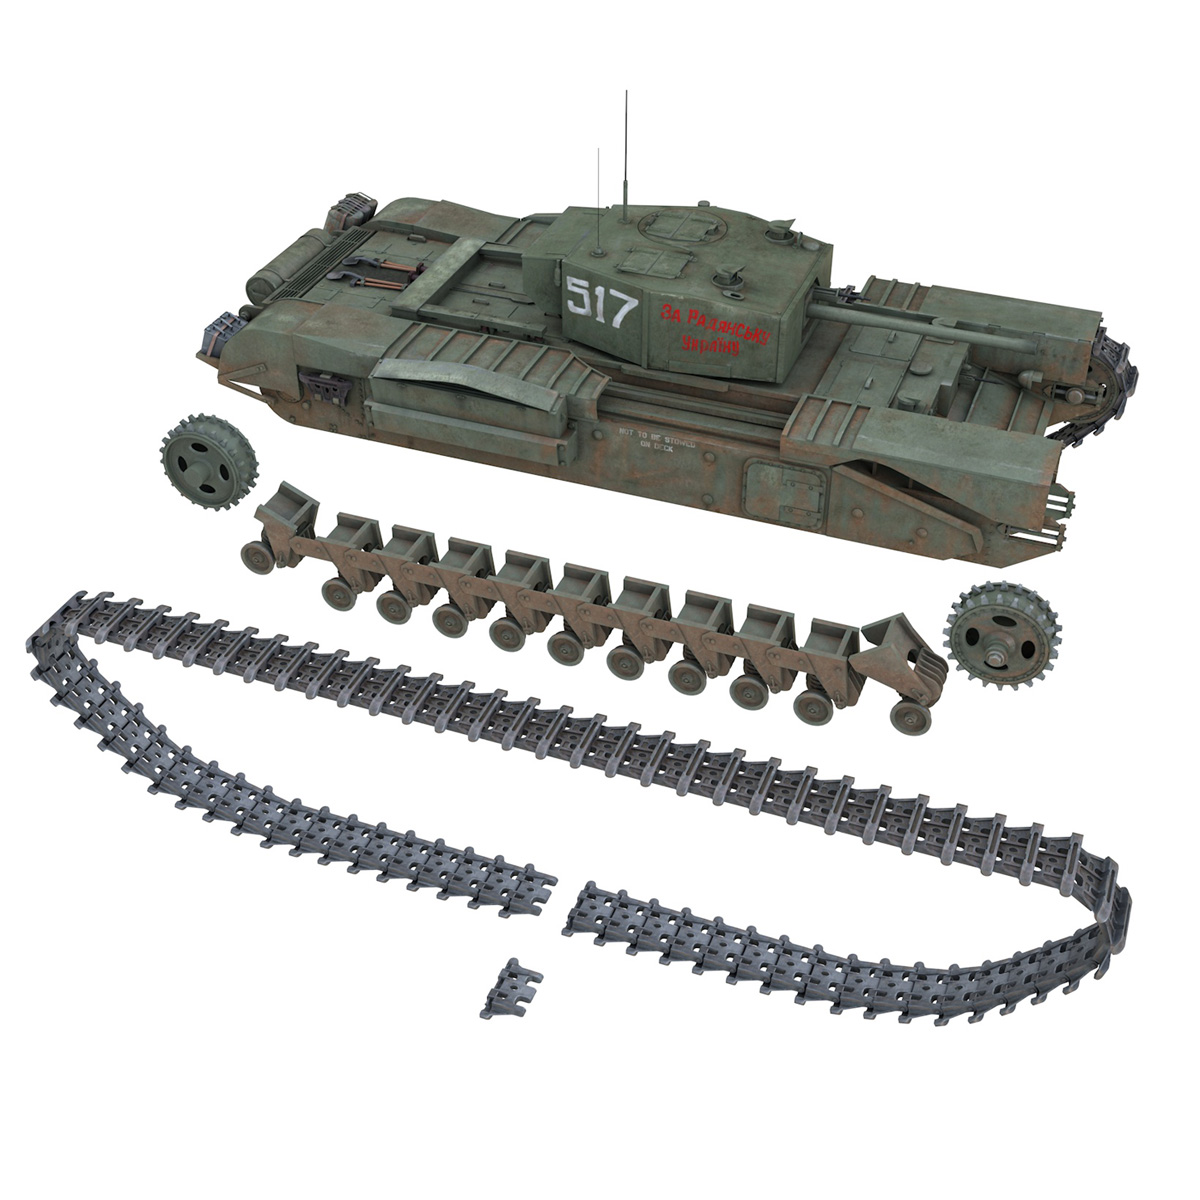 churchill mk iii - 517 - soviet army 3d загвар 3ds fbx c4d lwo obj 272983